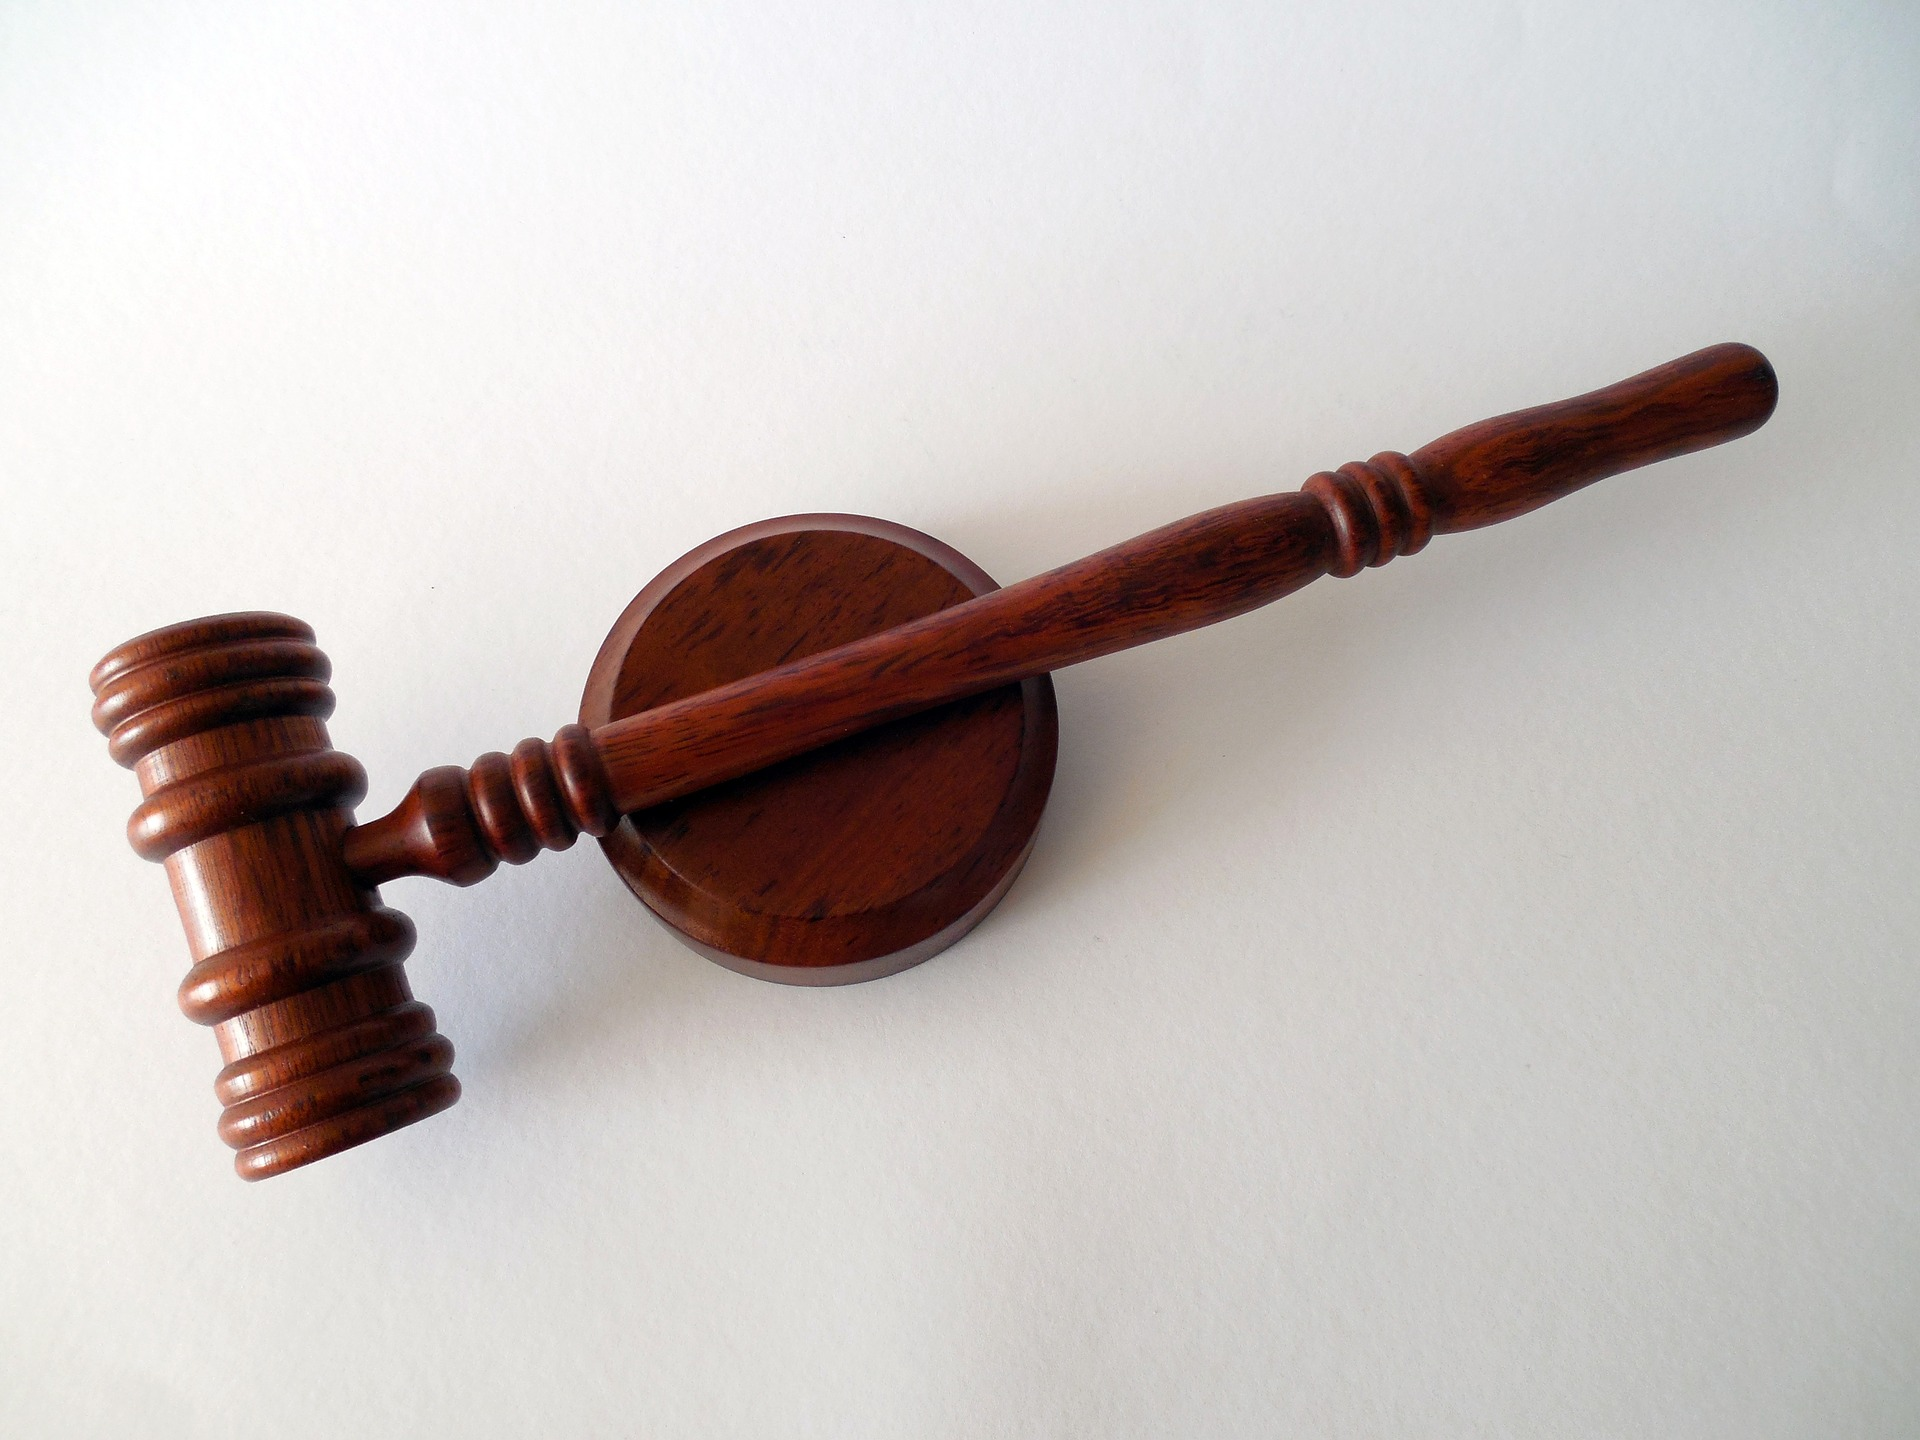 Auction gavel for land sale